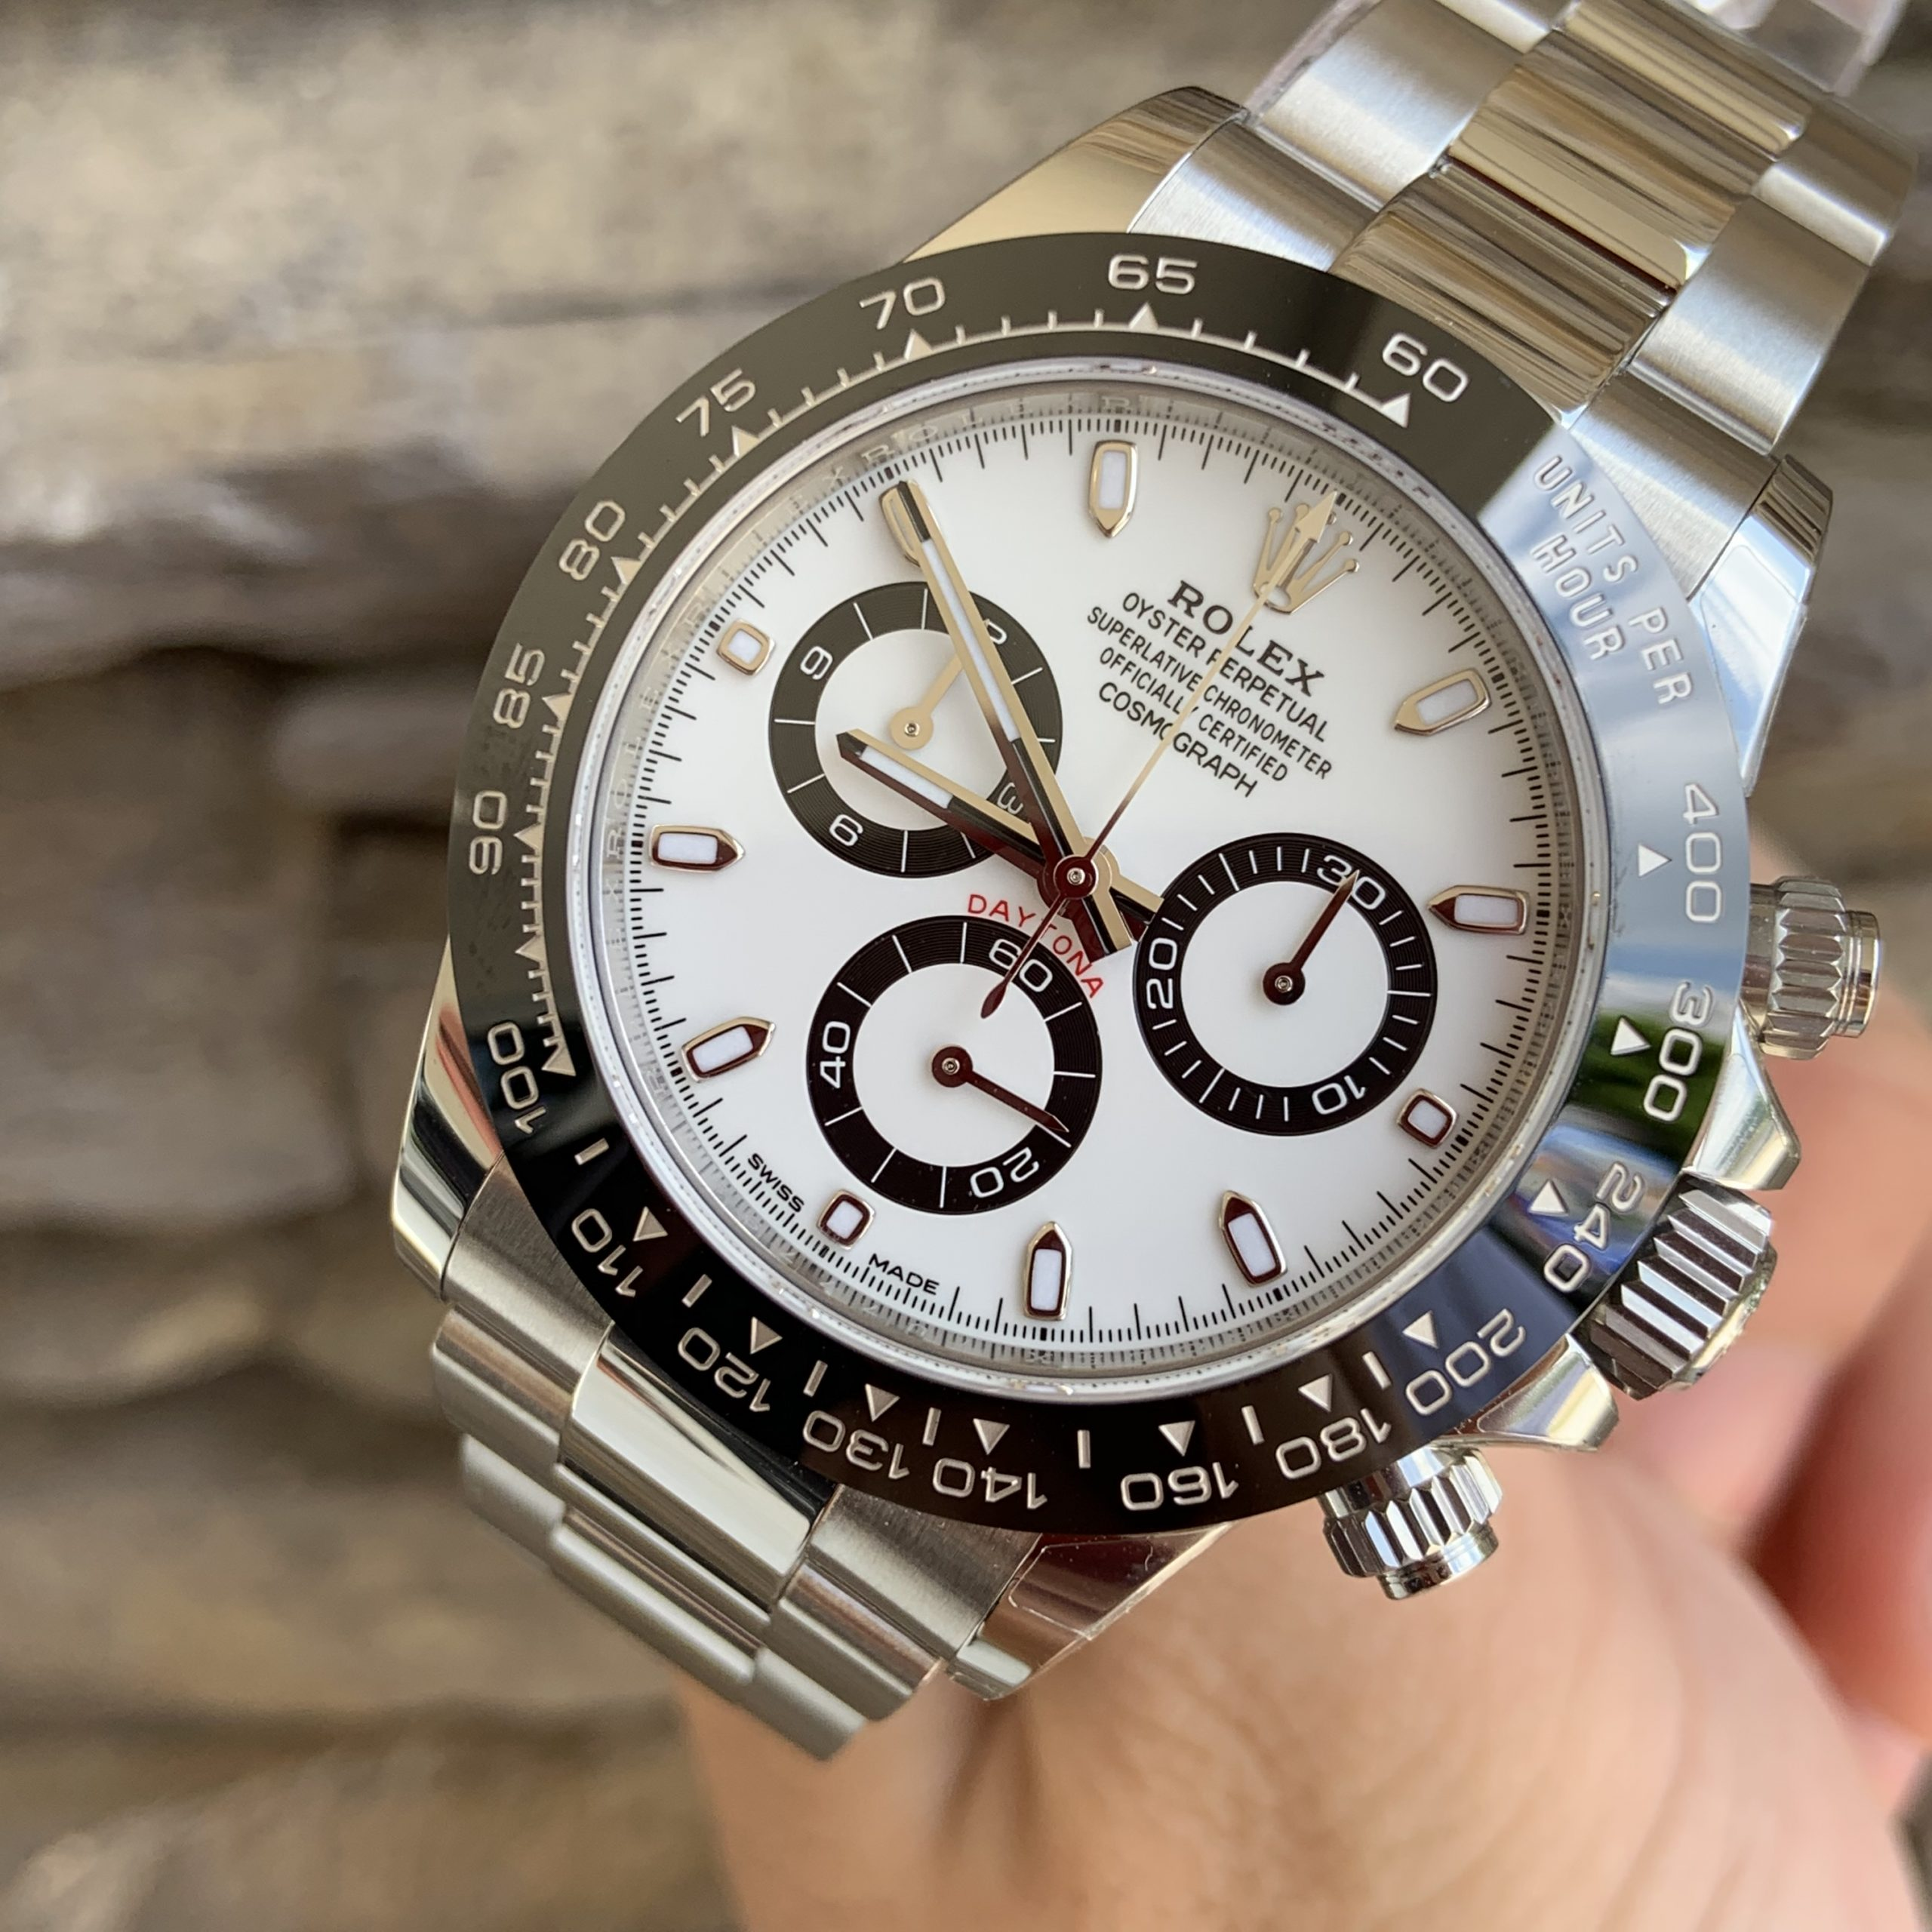 Daytona Watch white & black ceramic dial Rolex